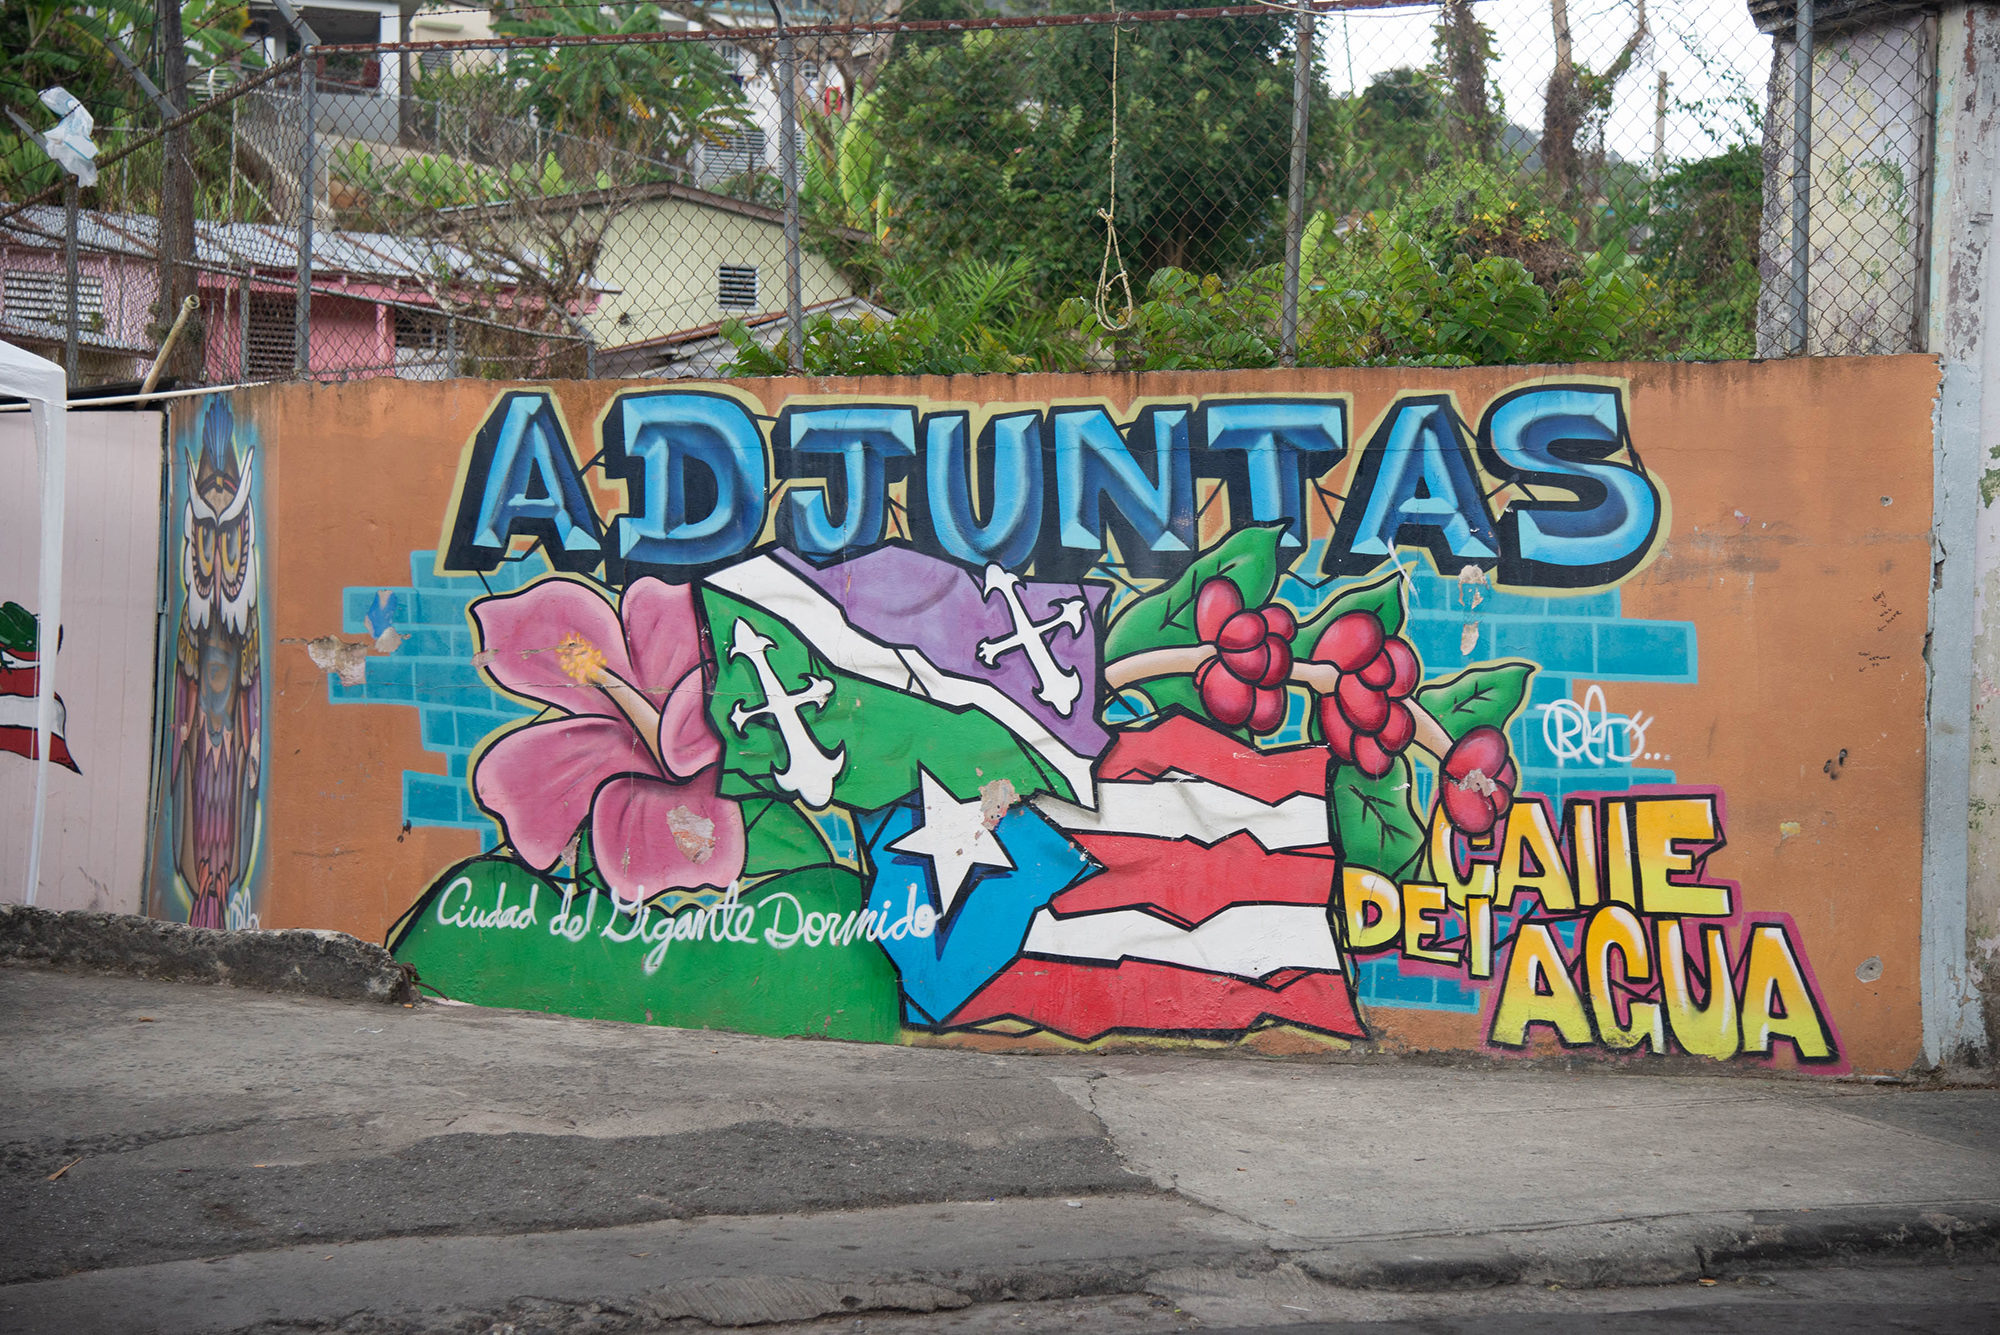 A mural in Adjuntas, Puerto Rico. Photo by Valerie Welch